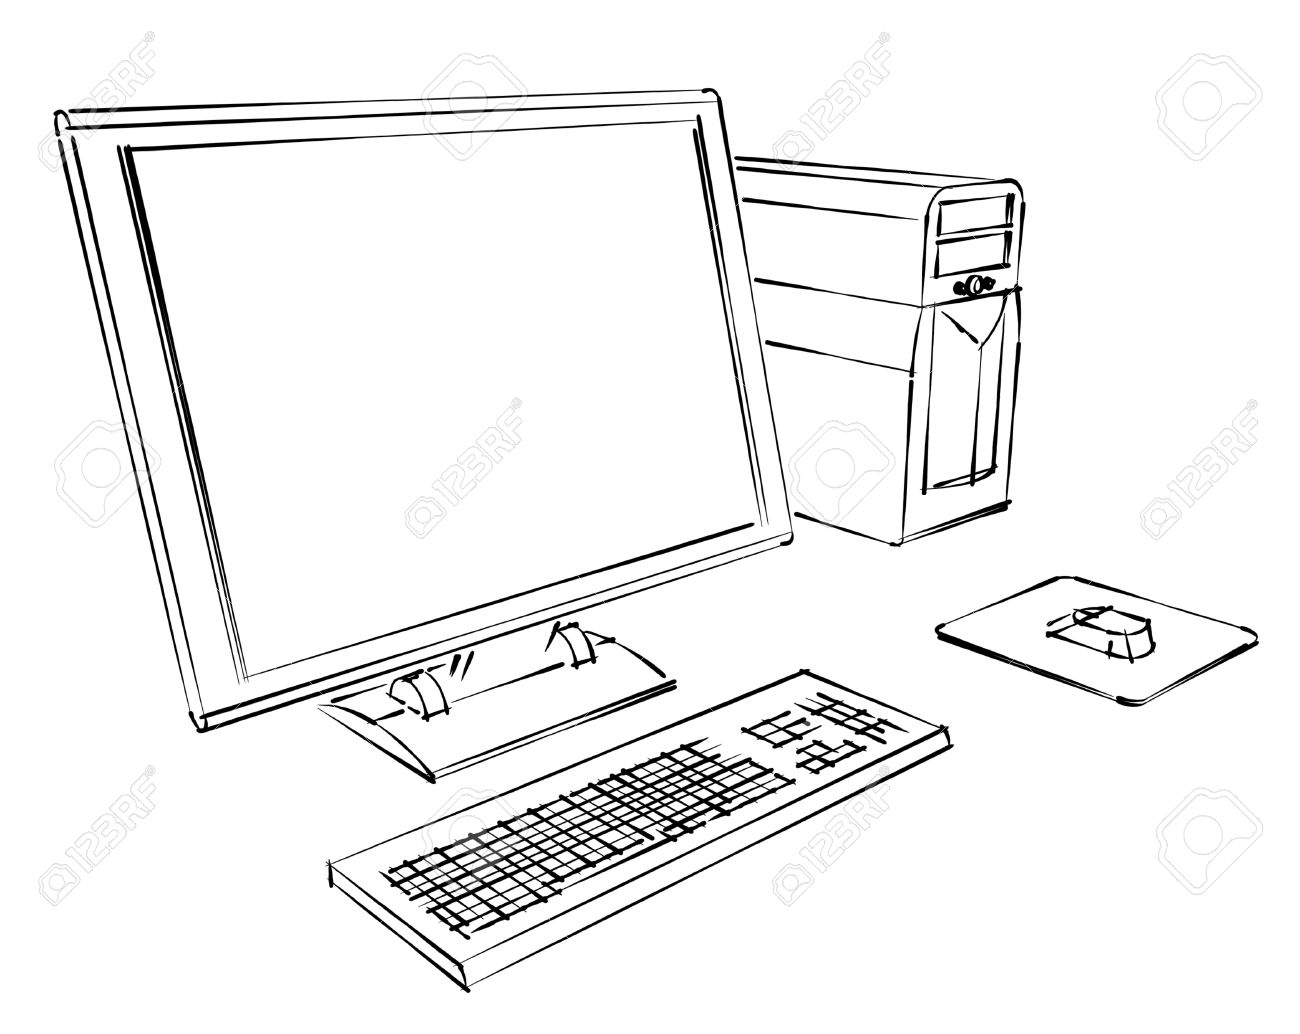 Monitor Drawing At Getdrawings